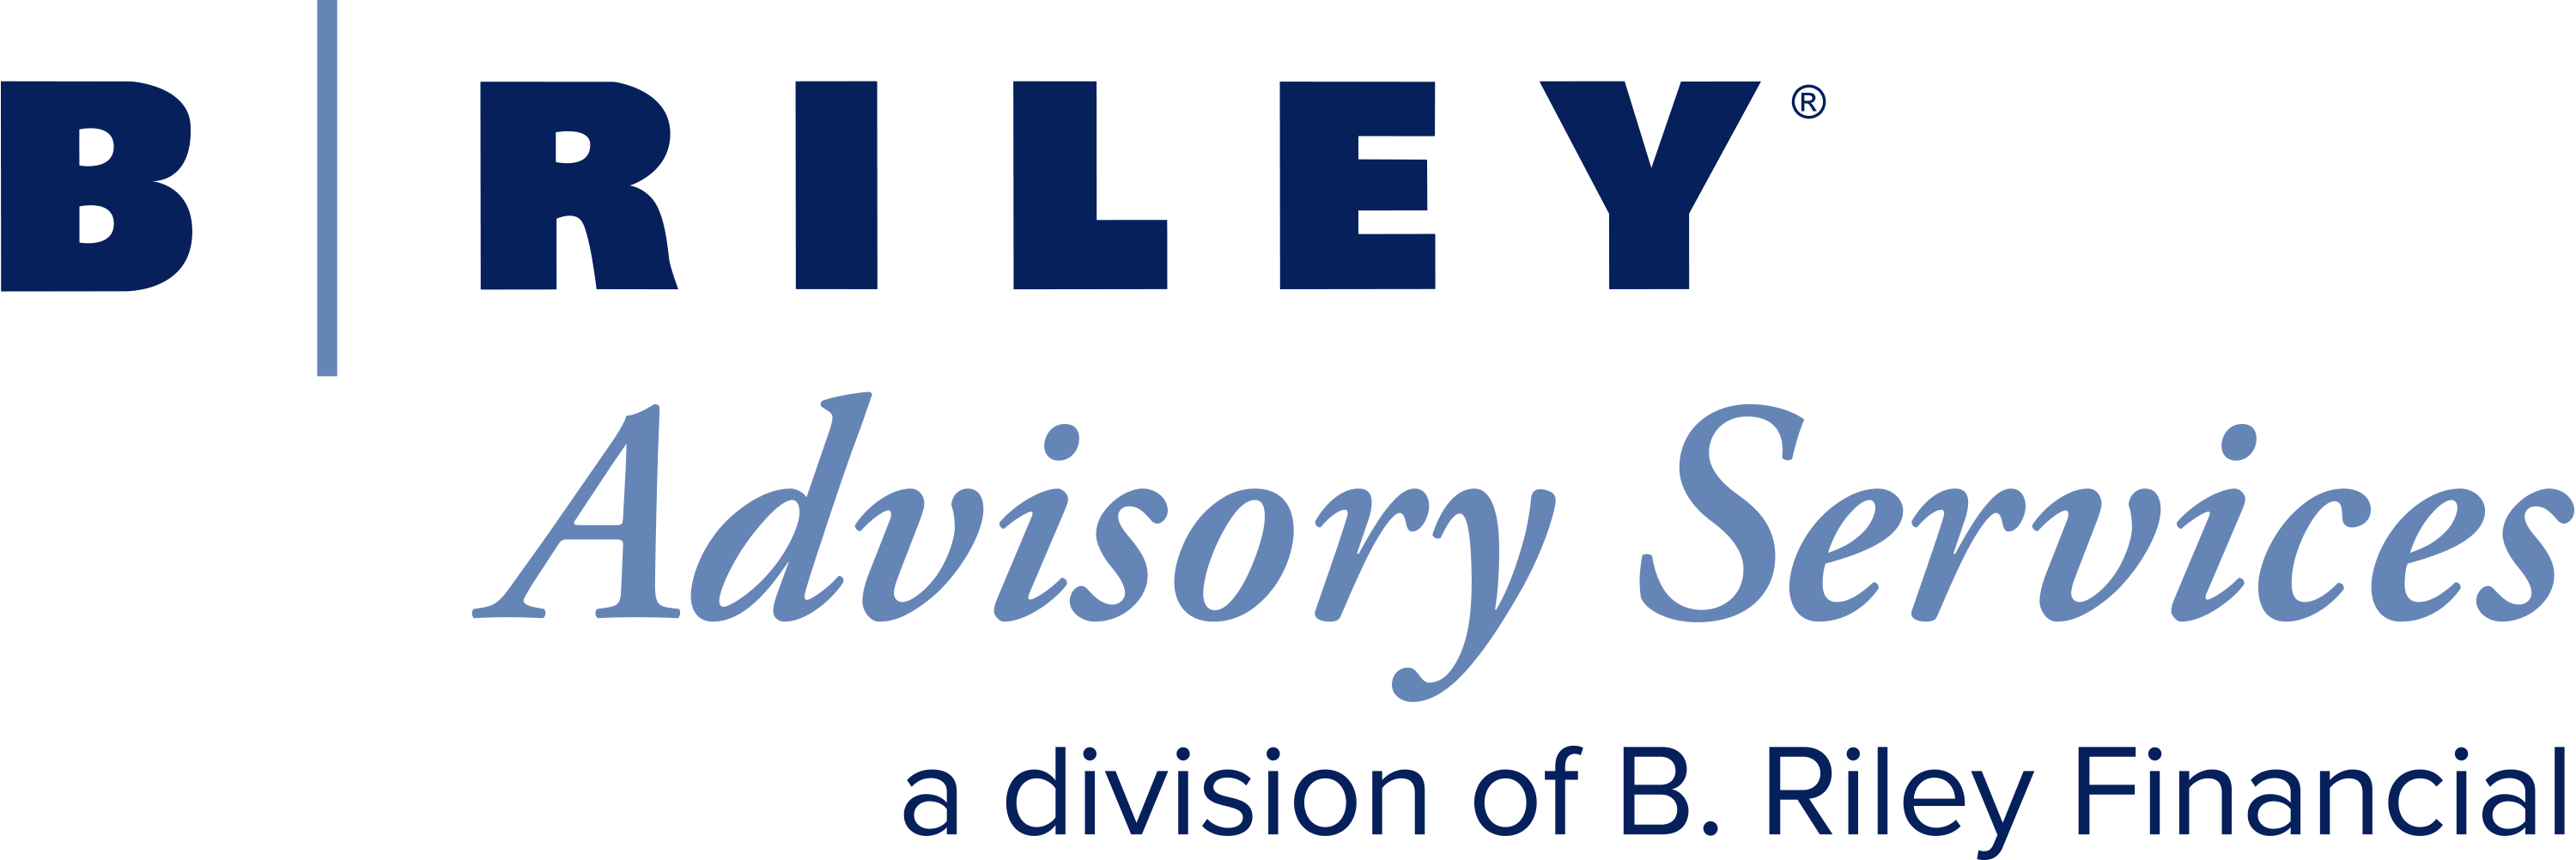 B. Riley Advisory Services